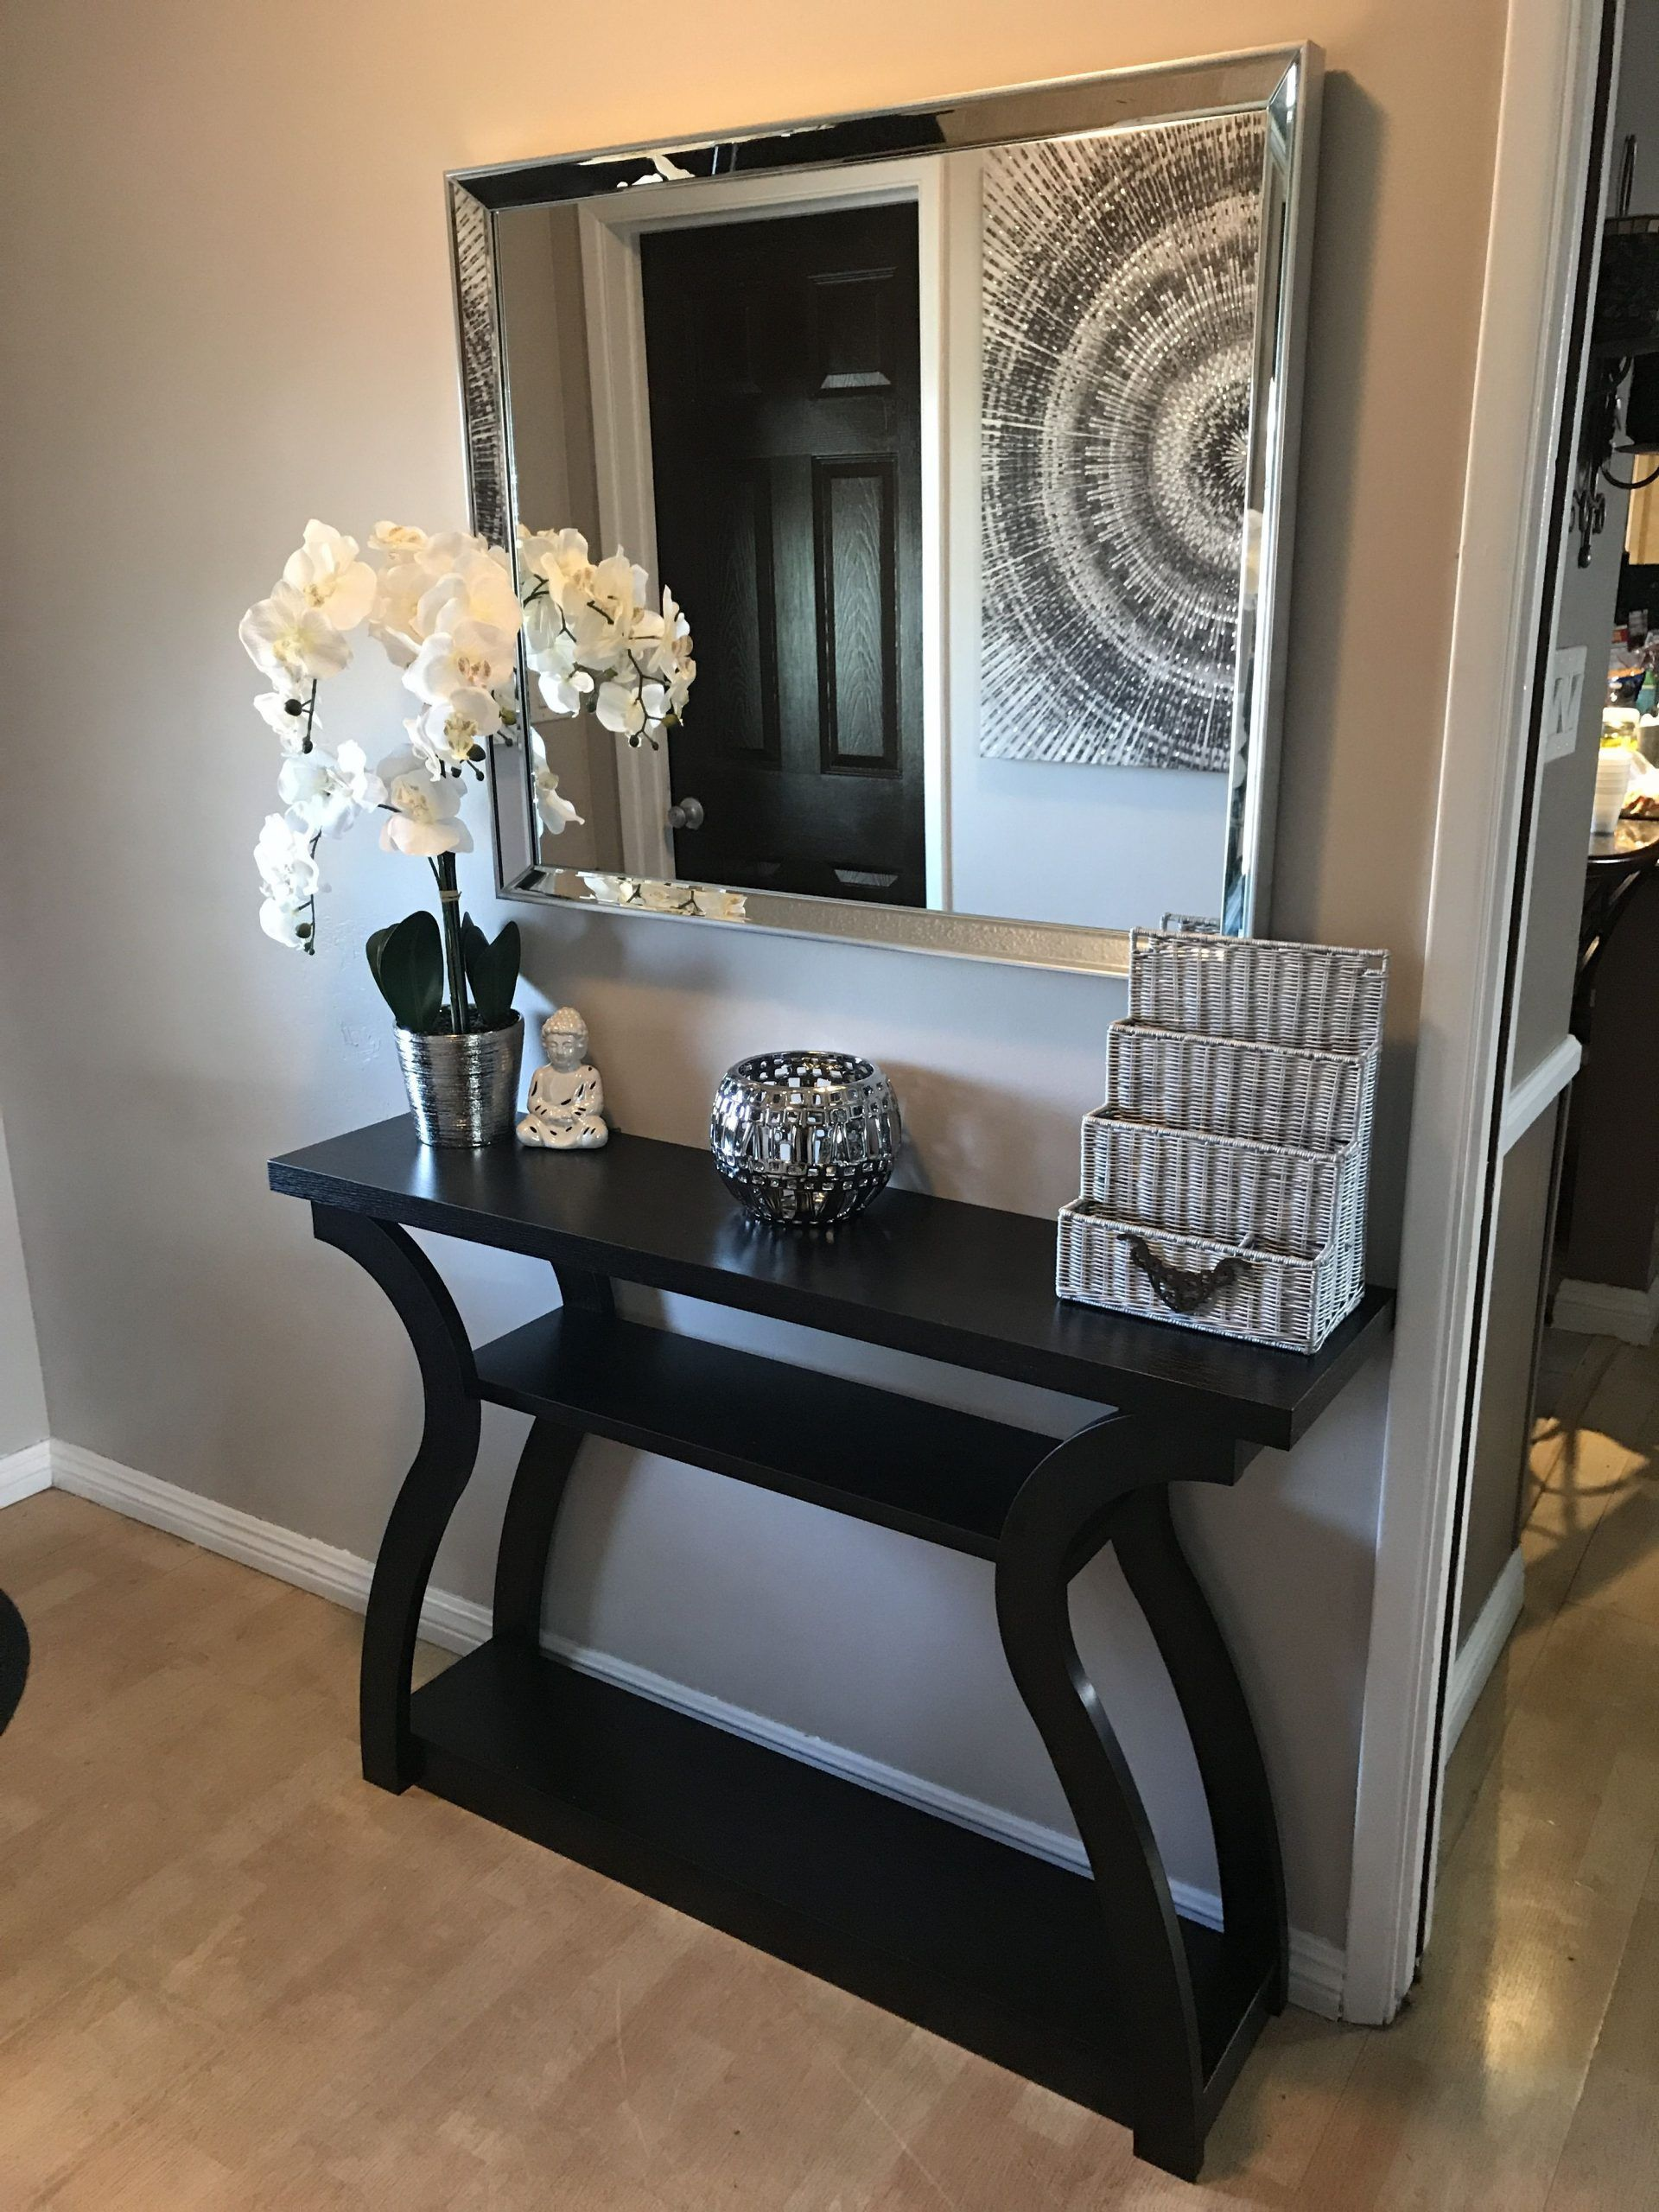 Dining Room Console Table Decor Console Table Entry Way Decor Living Room Decor Apartment Home Decor Living Room Decor Living room console table ideas